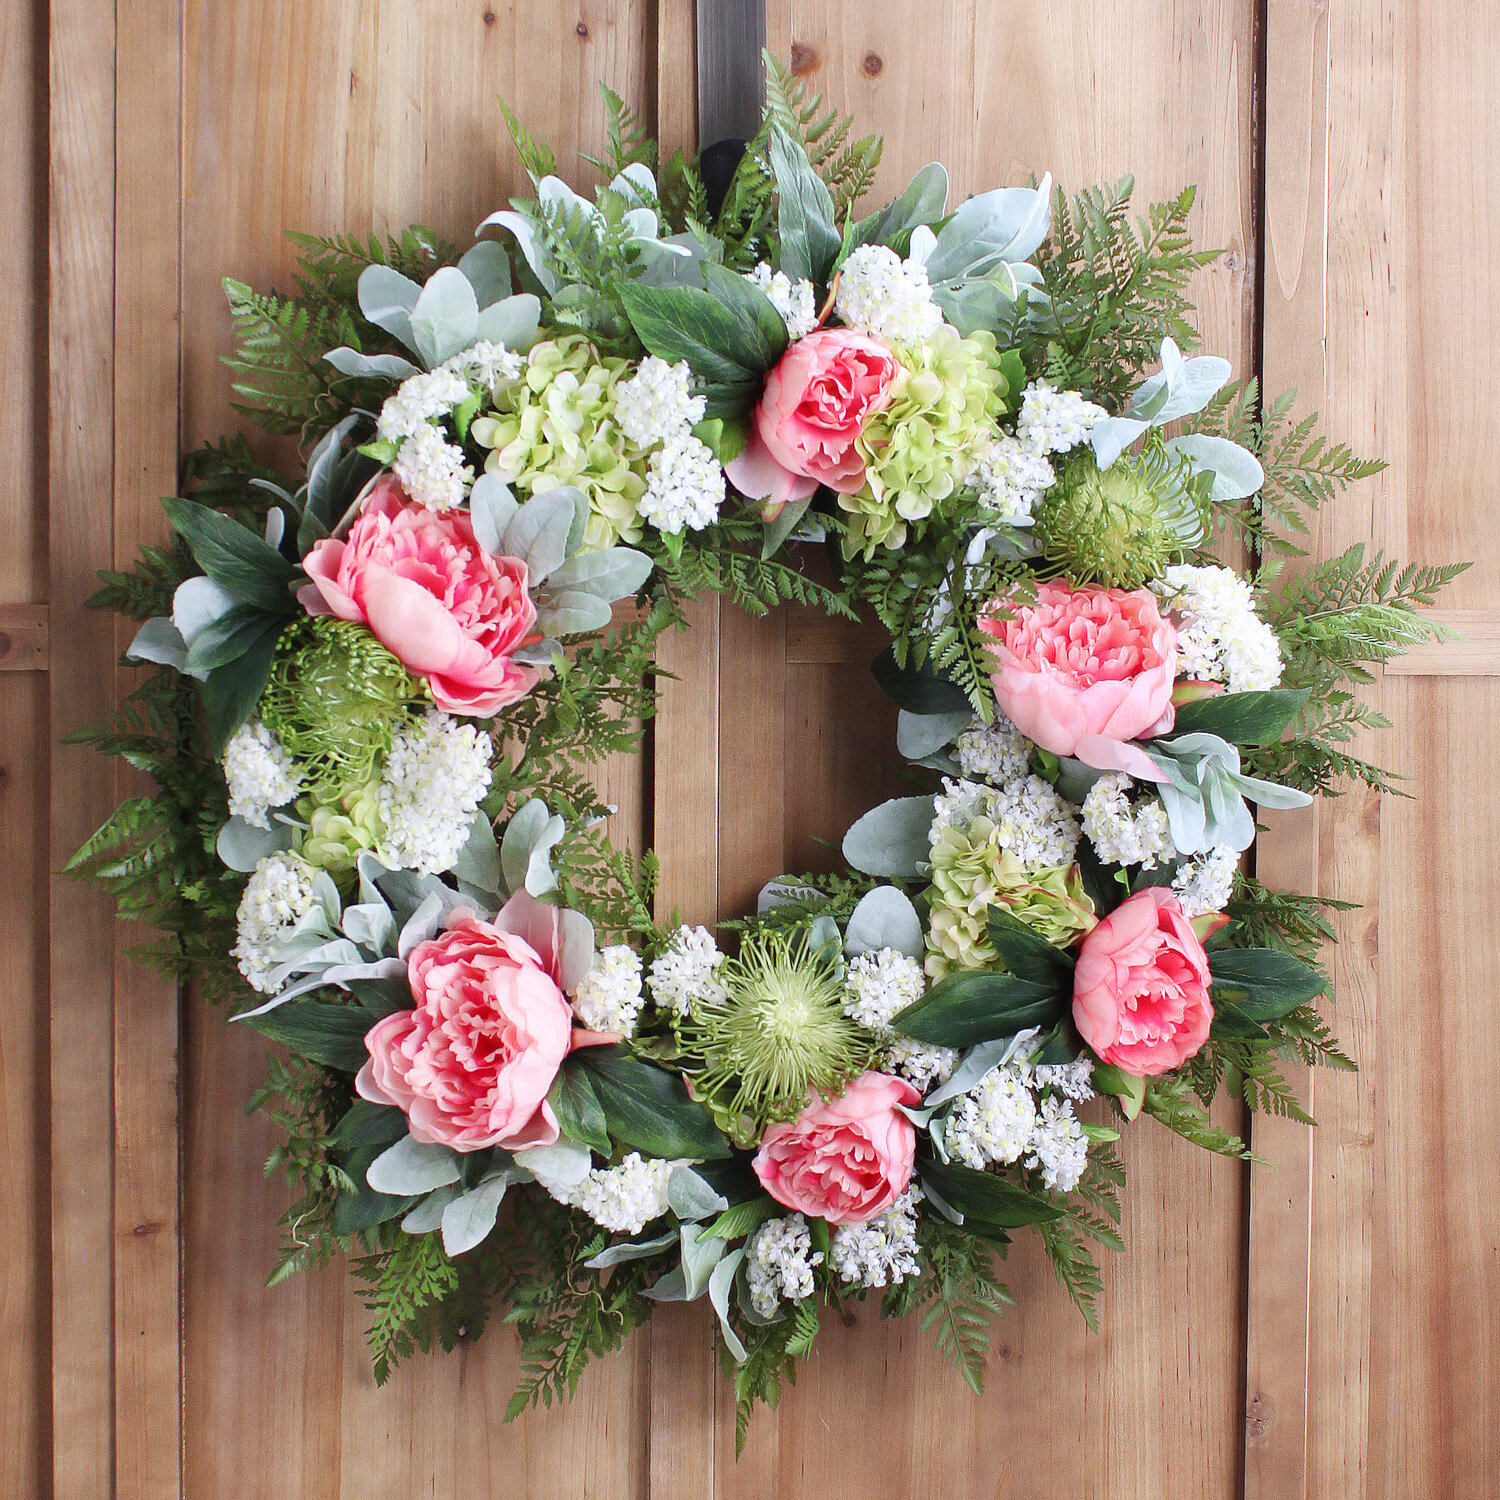 Hydrangeas and Dahlias; Rose Pink Green Large Summer Spring Wreath for Front Door Decor; 24 Inch; Peonies Cream